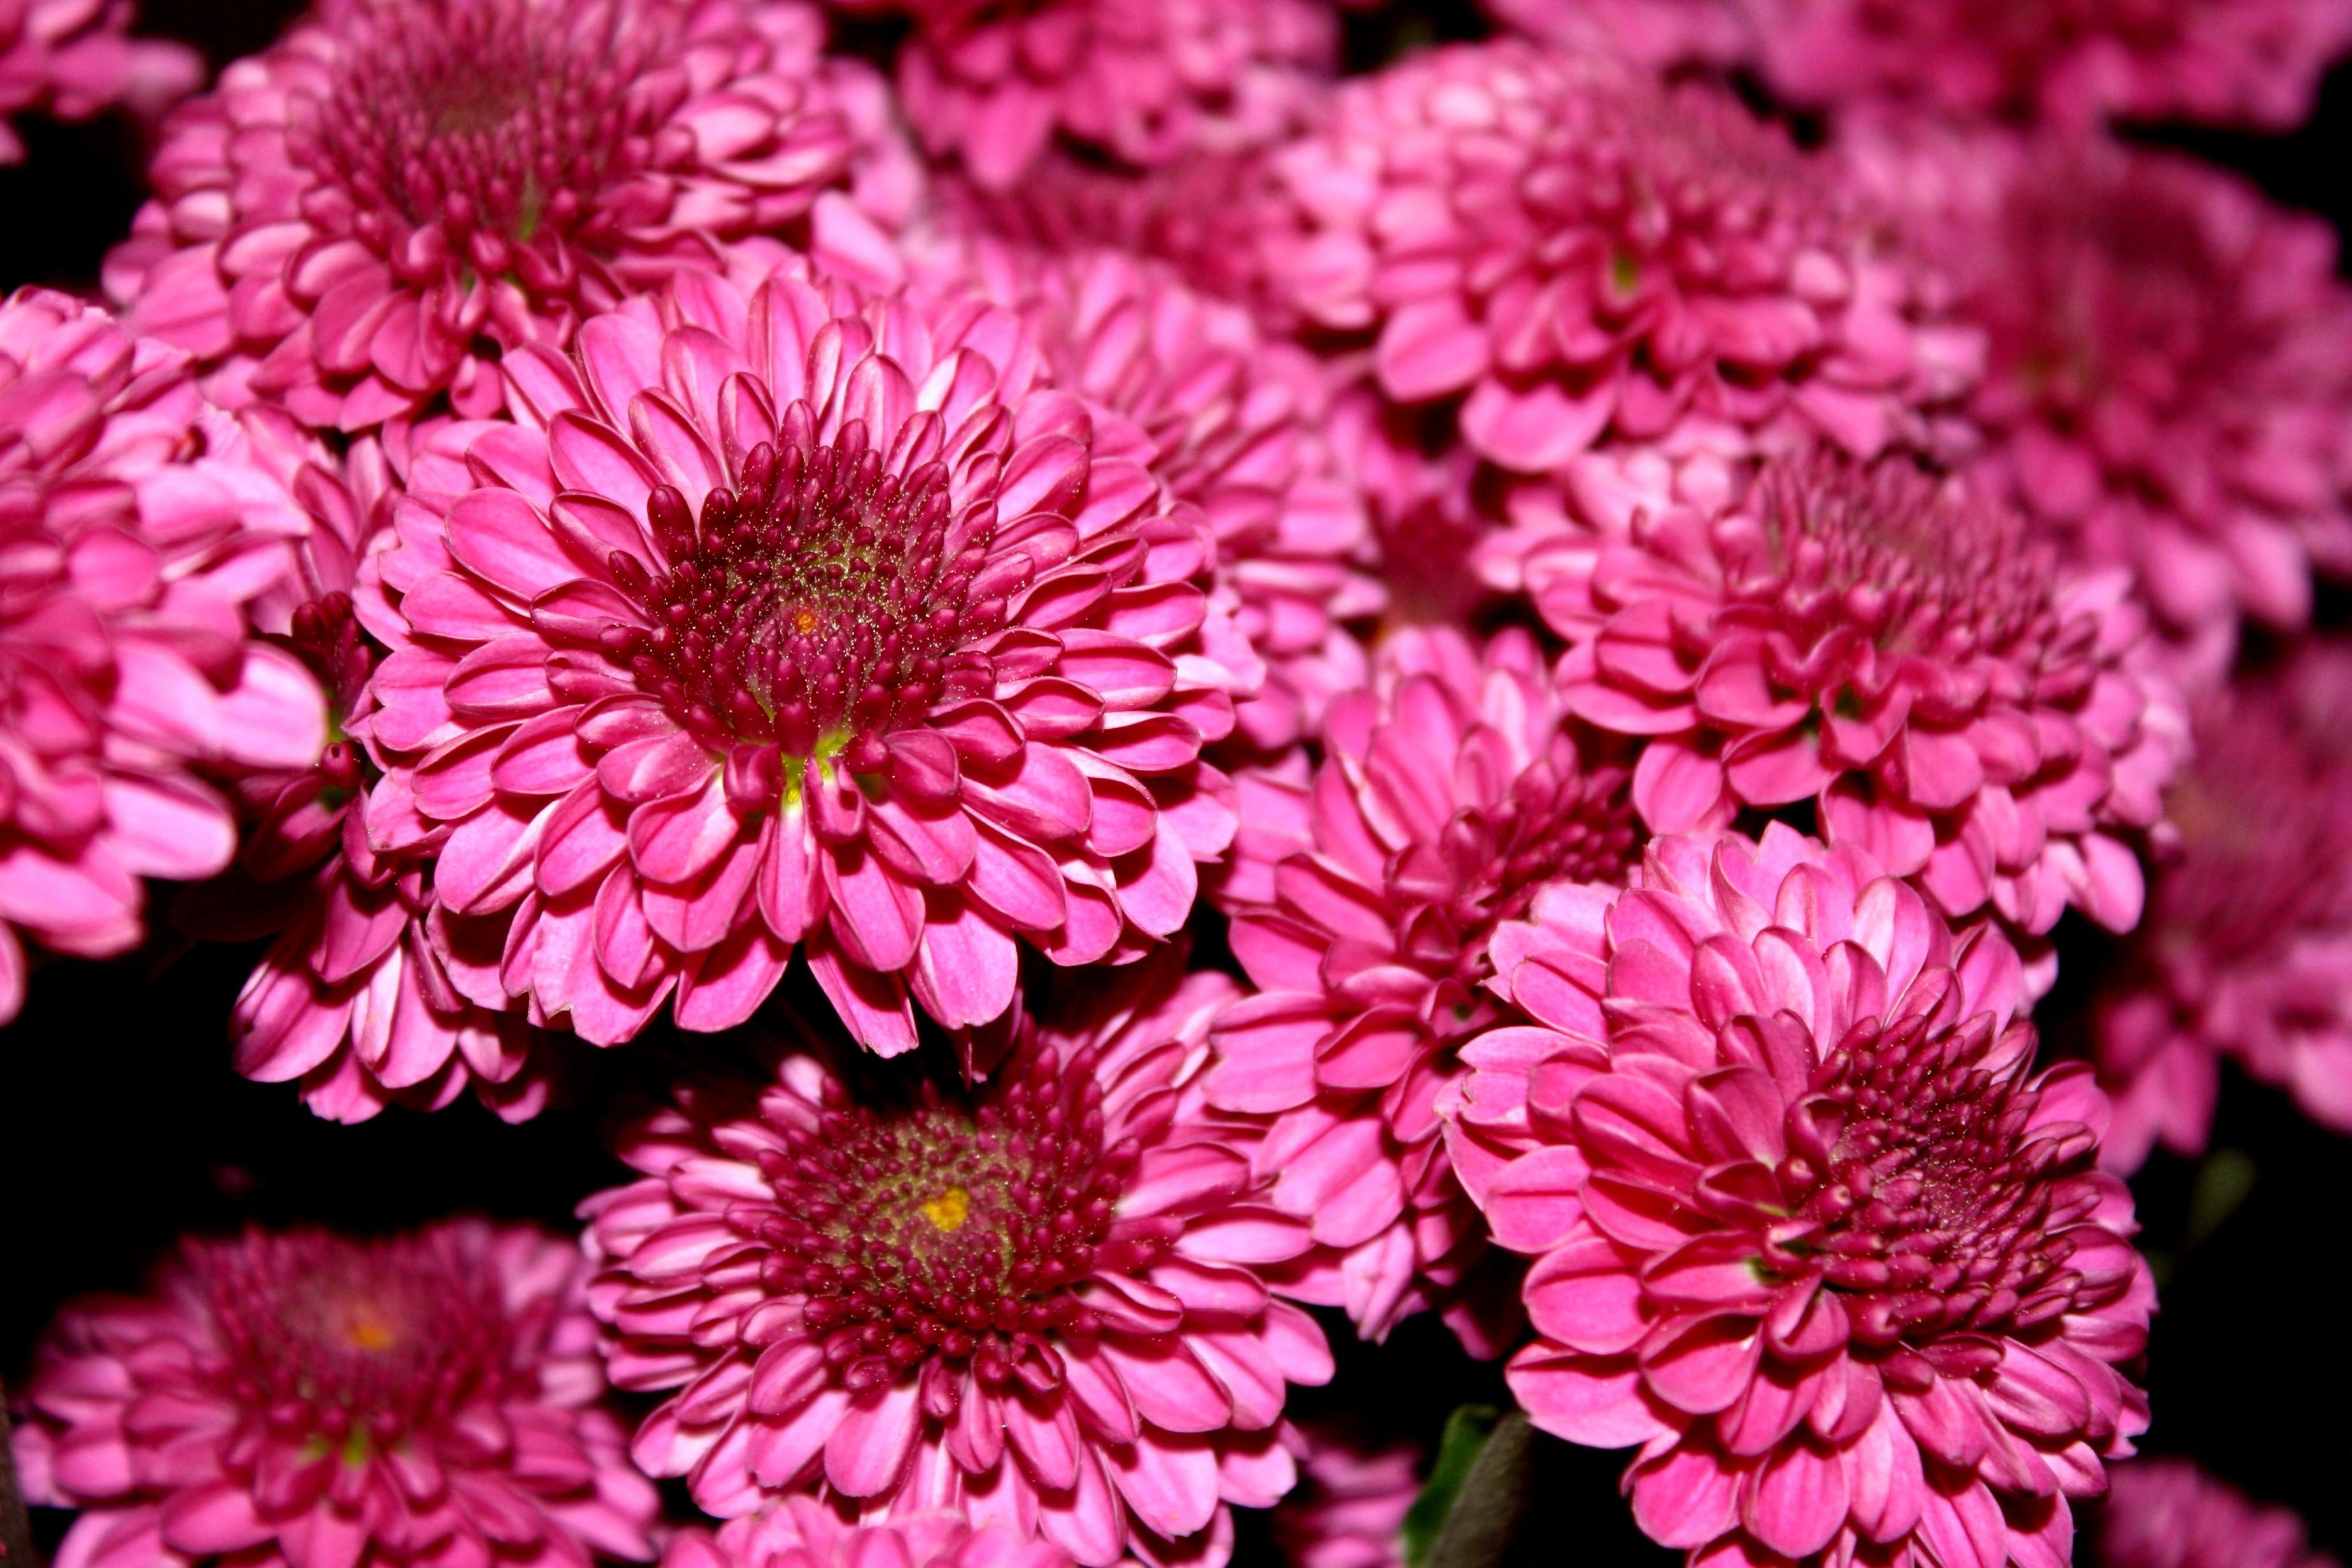 Free picture  chrysanthemums  flower  magenta color chrysanthemums  flower  magenta color